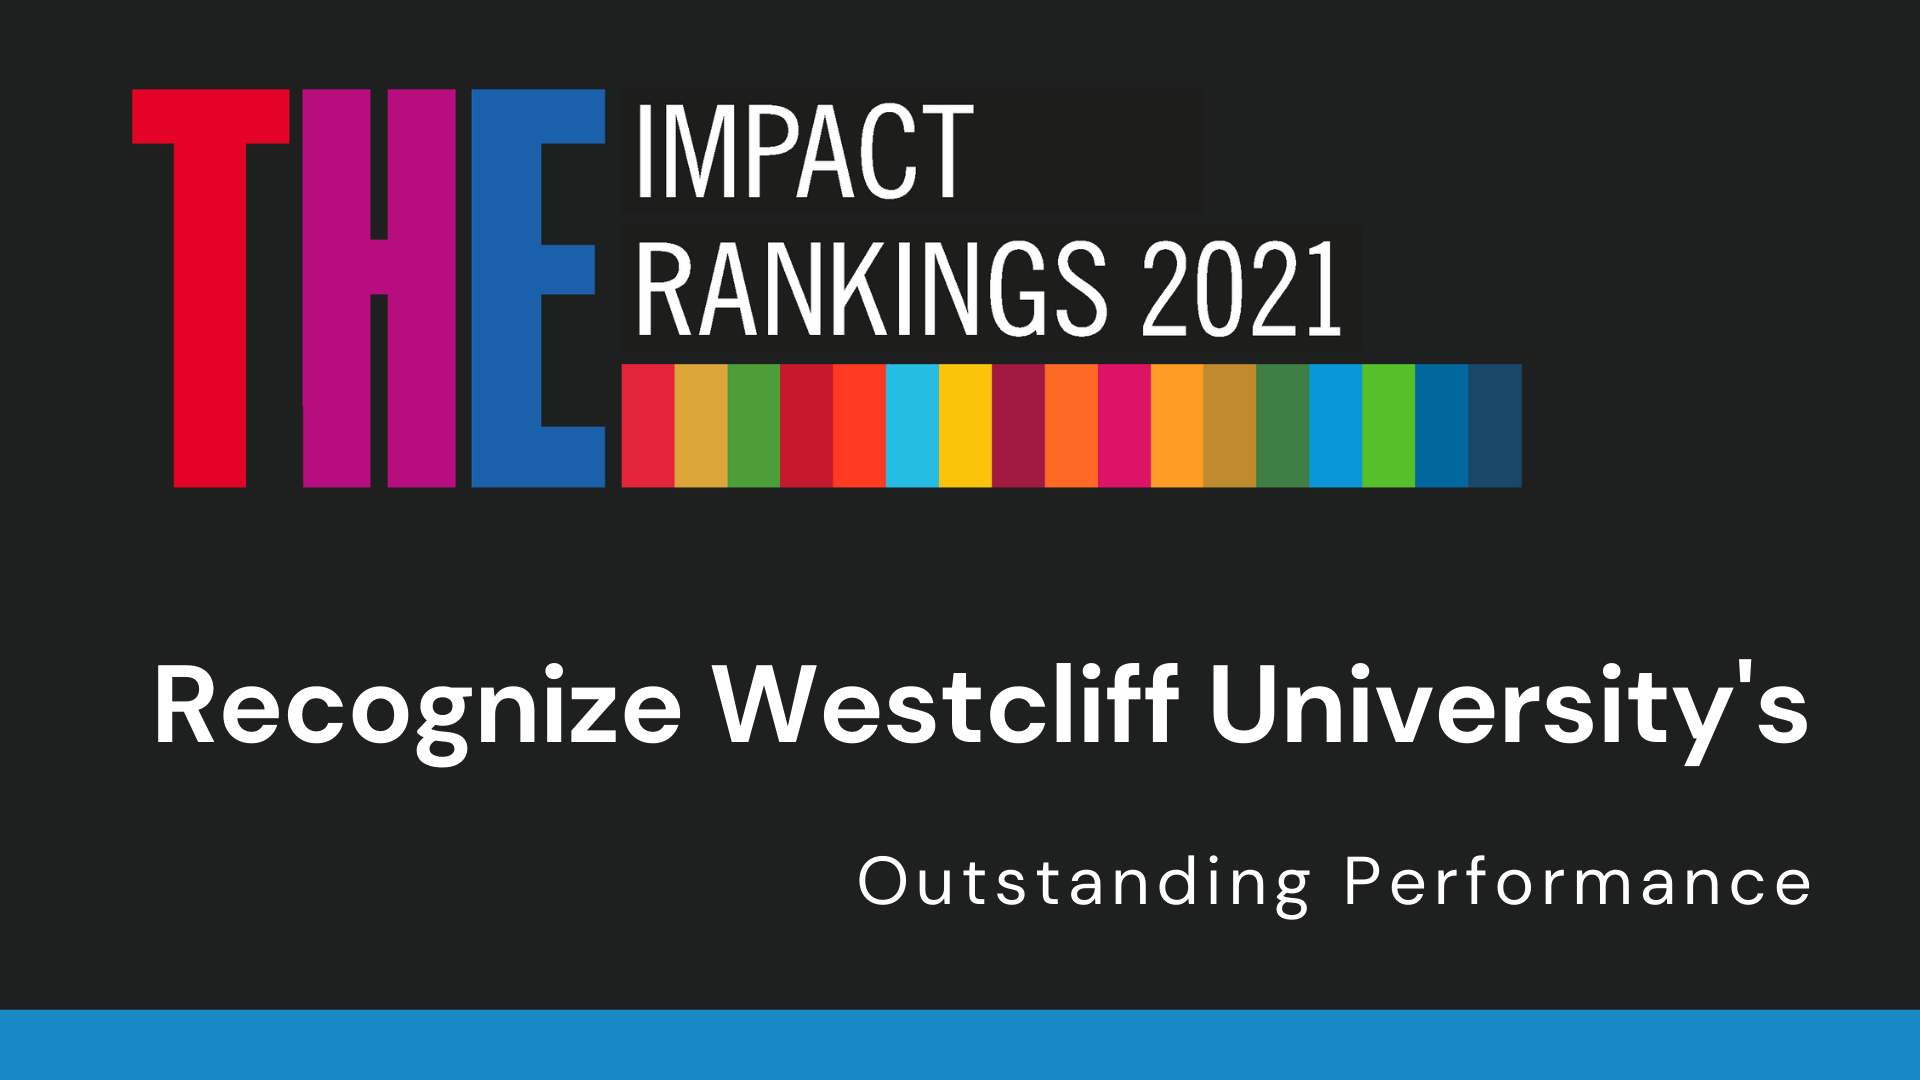 IMPACT RANKINGS 2021 RECOGNIZE WESTCLIFF UNIVERSITY'S OUTSTANDING PERFORMANCE